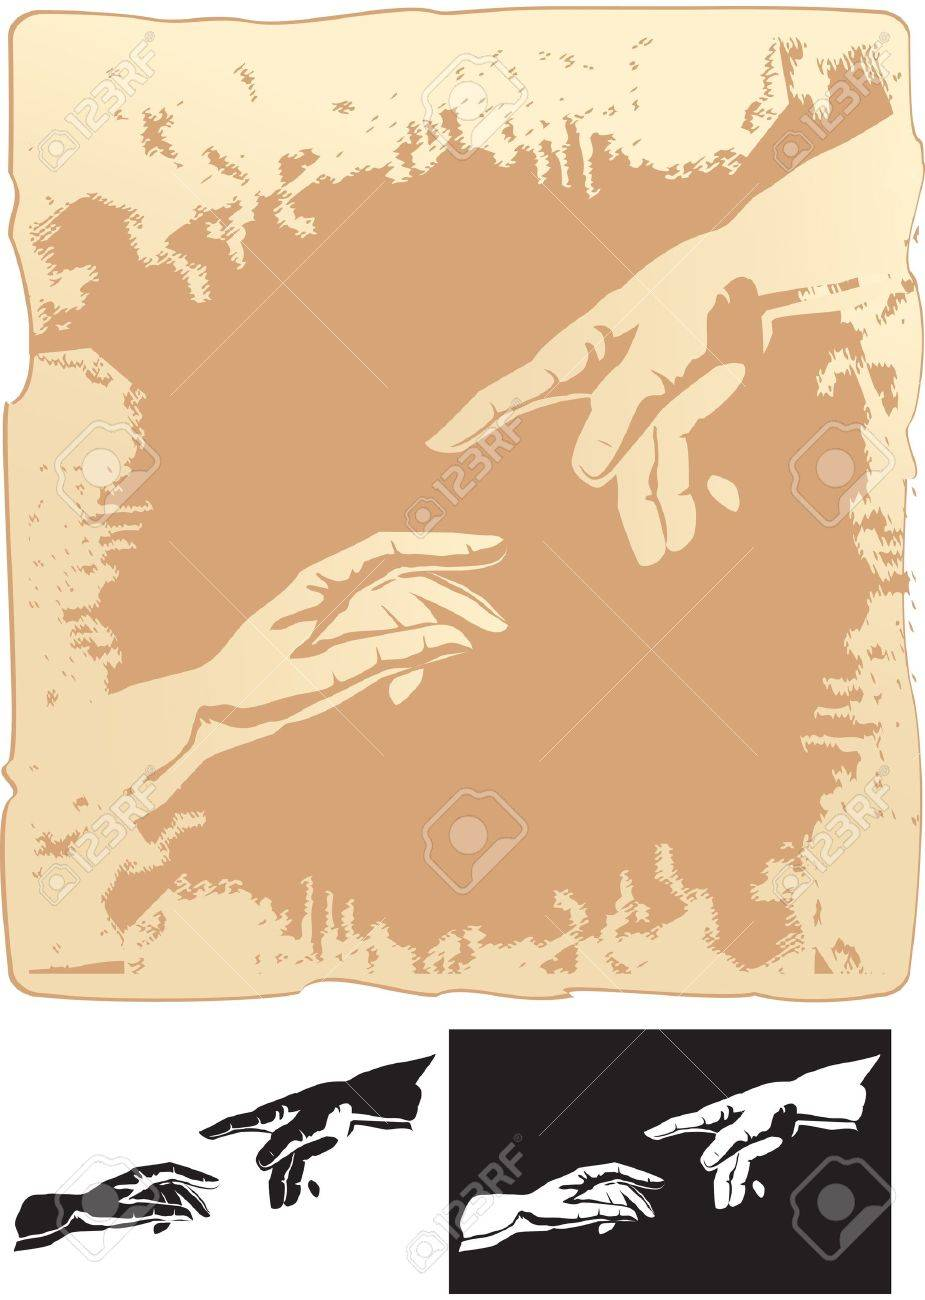 two hands stylized for michelangelo s creation mural Stock Vector - 12482948